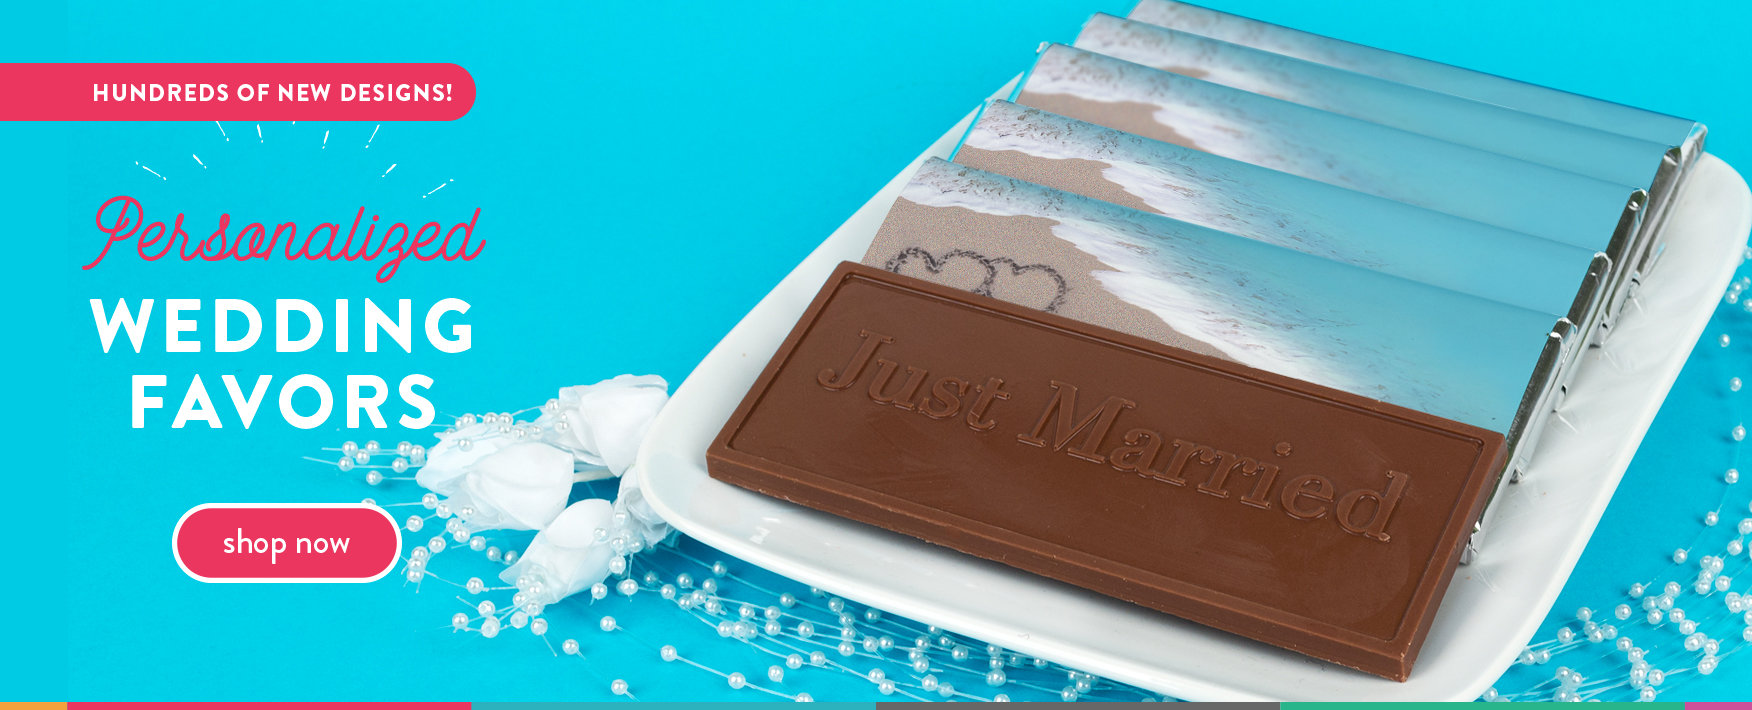 personalized wedding candy bars, hershey's kisses and chocolate covered oreo gift packs!